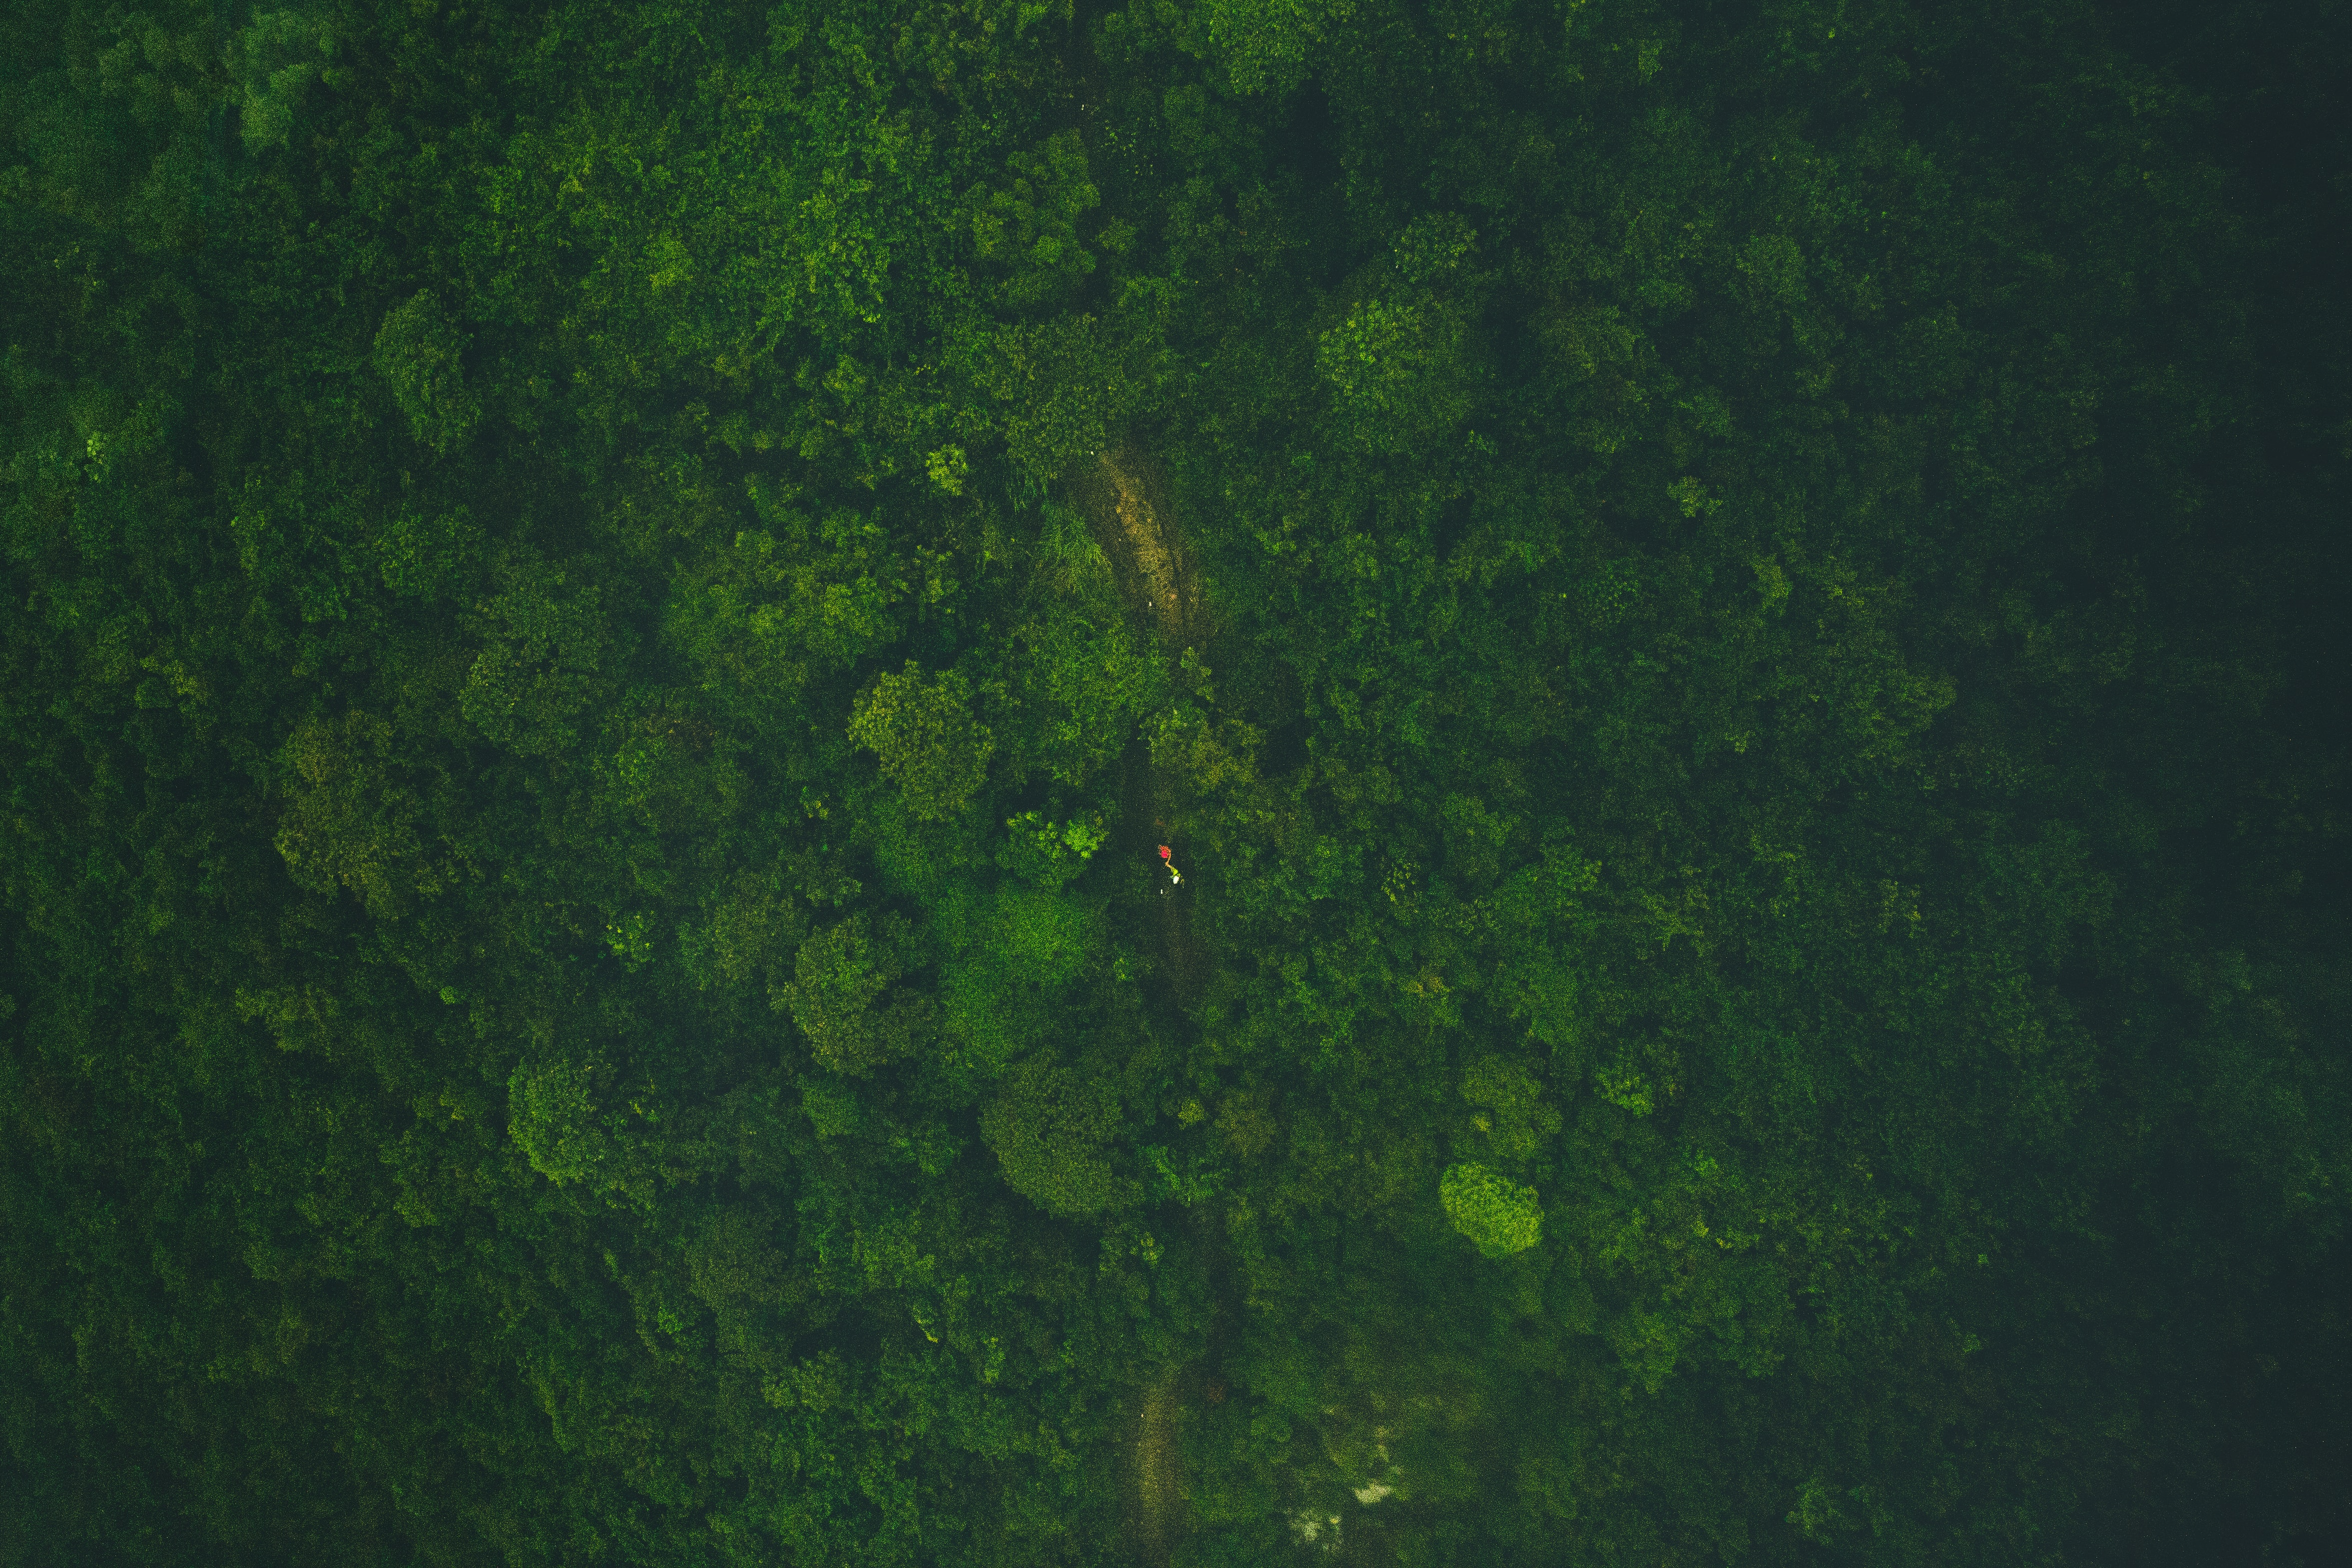 A drone shot of a hiker on an overgrown footpath in a green forest on Lantau Island